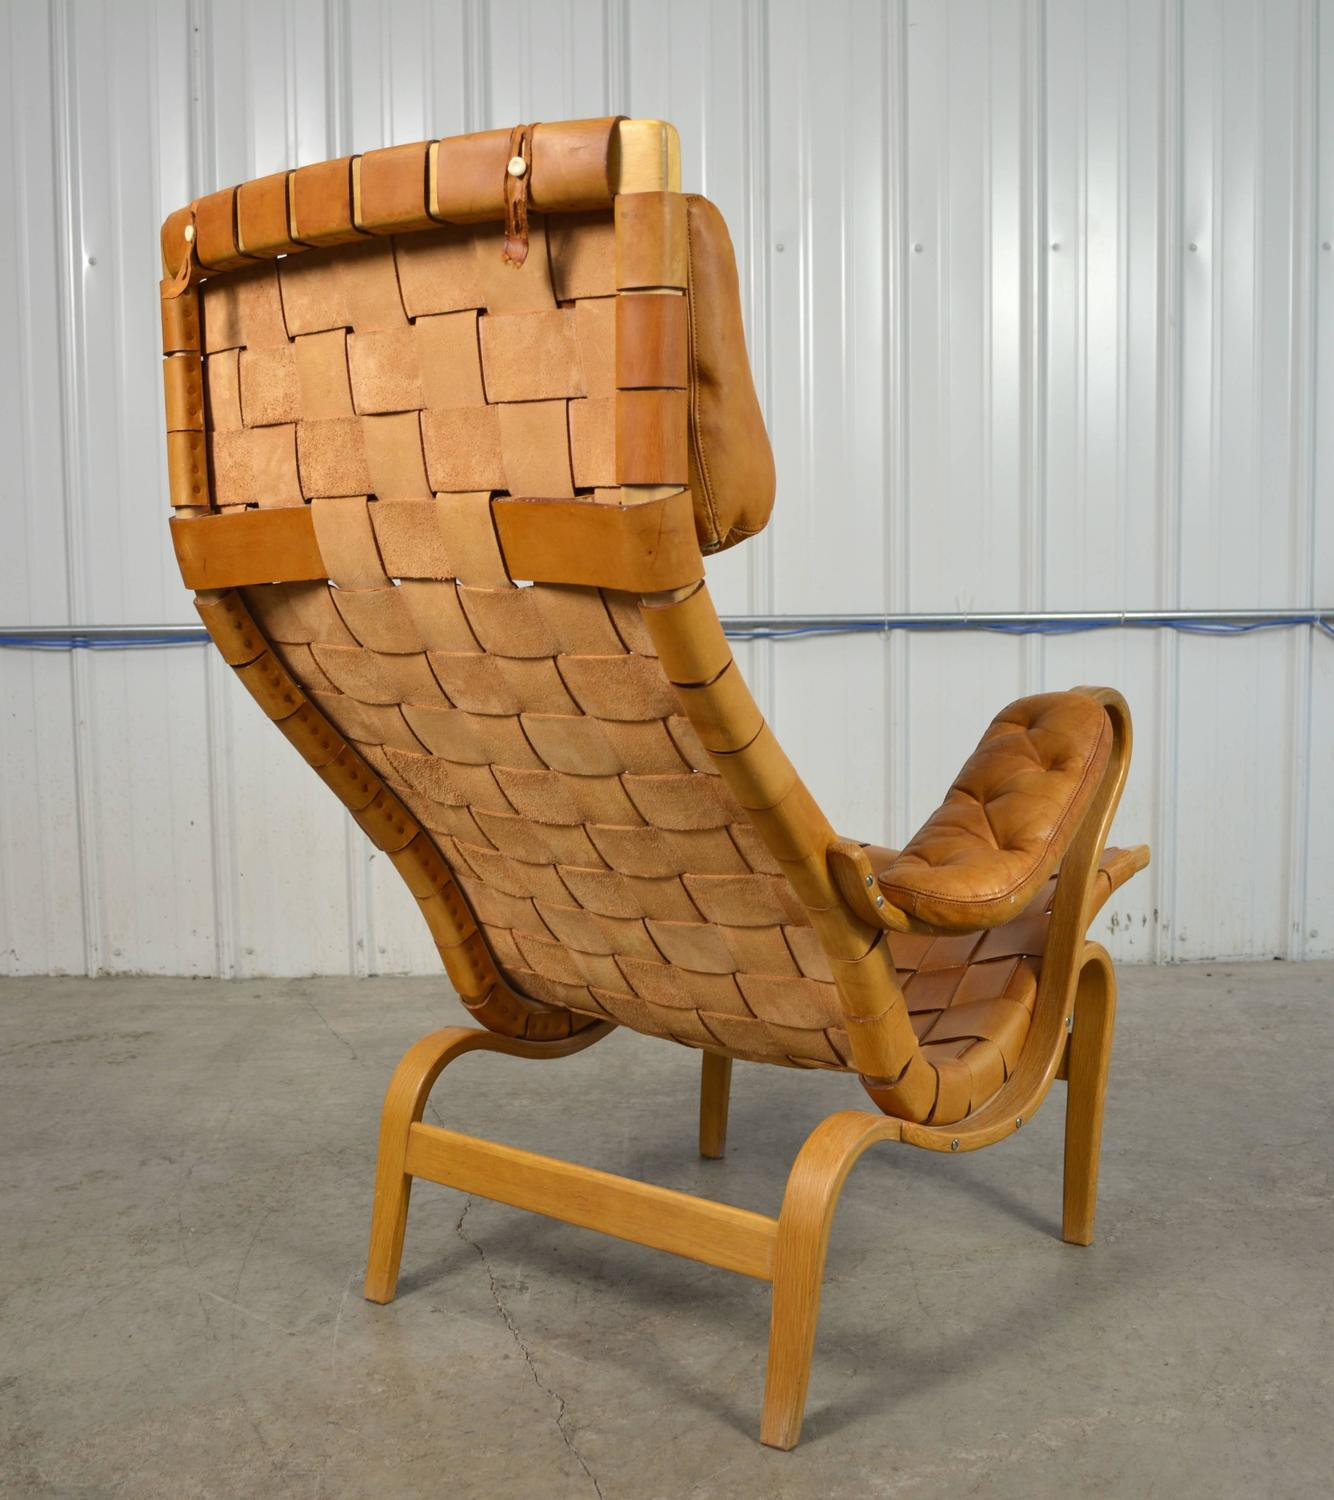 Woven Leather Chair Bruno Mathsson Pernilla Woven Leather Chair At 1stdibs